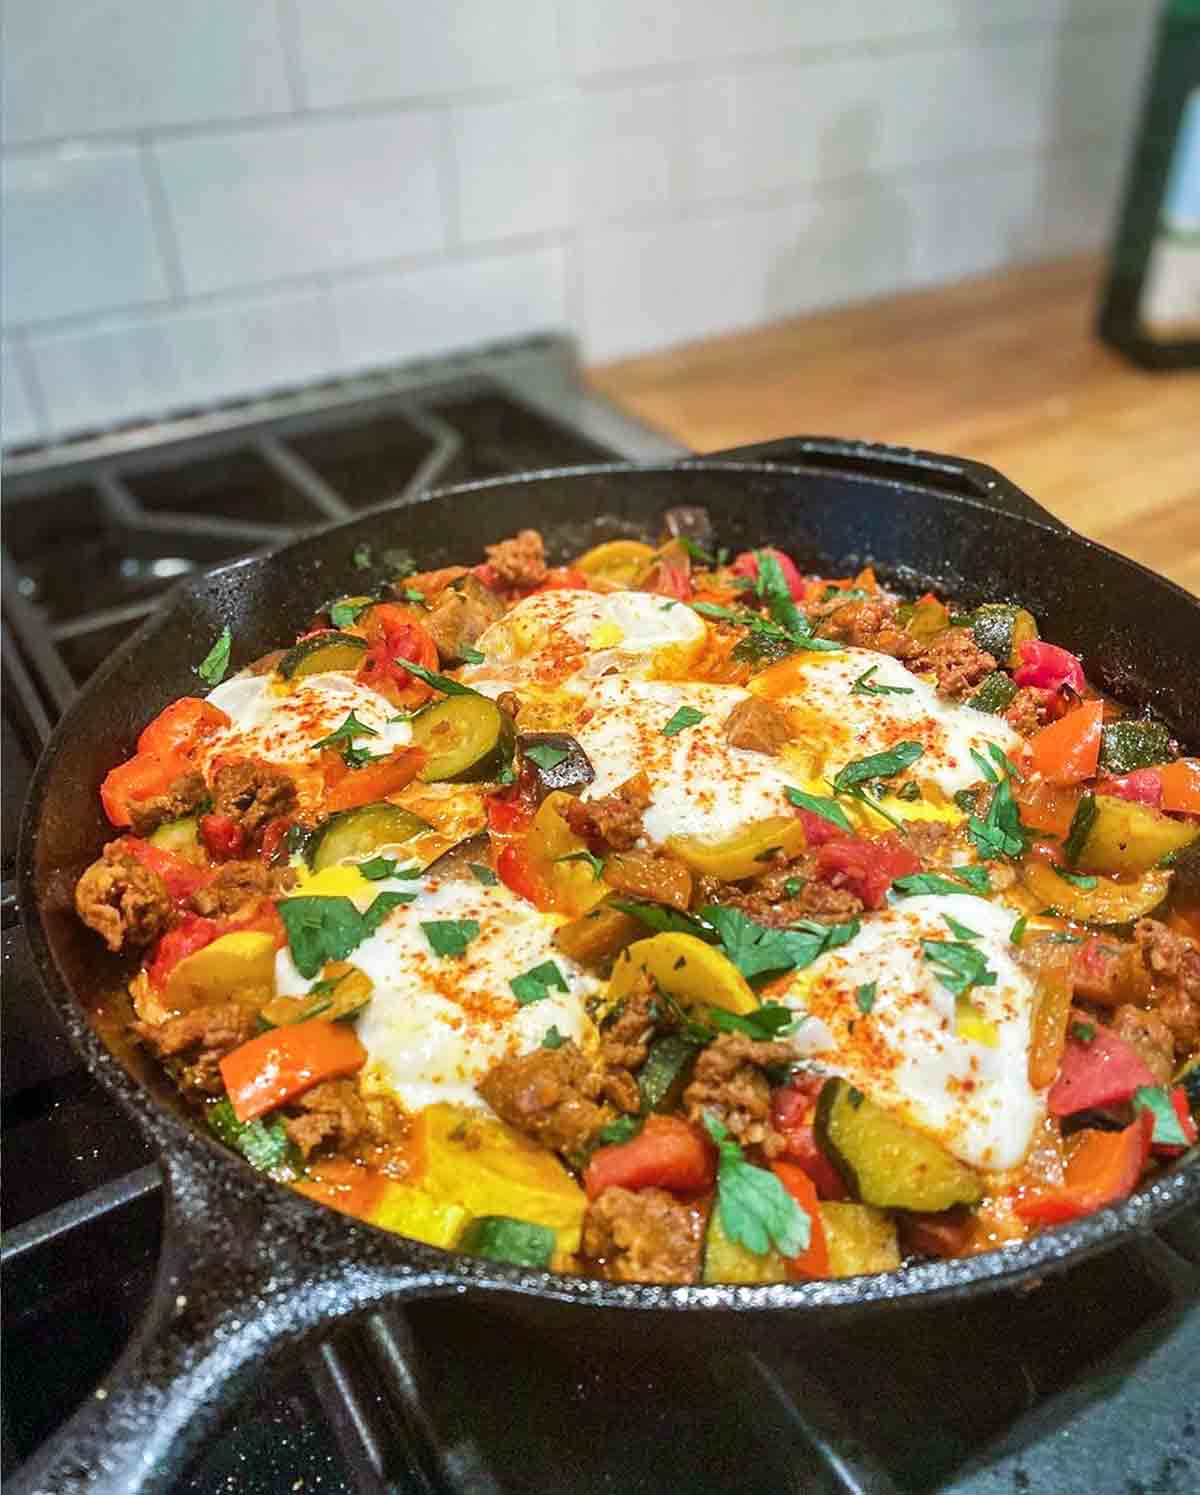 A skillet of eggs with chorizo and eggplant, tomato, zucchini, onion, and peppers.